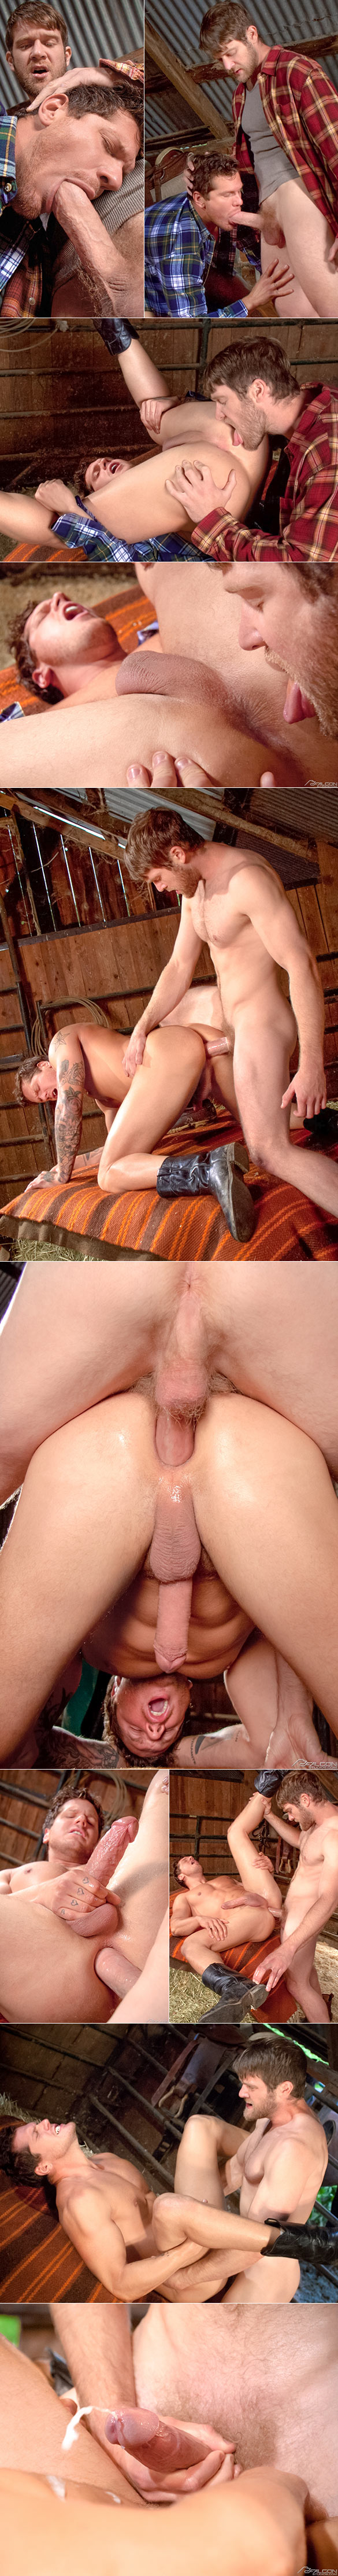 "Falcon Studios: Colby Keller pounds Parker London in ""Cowboys"""